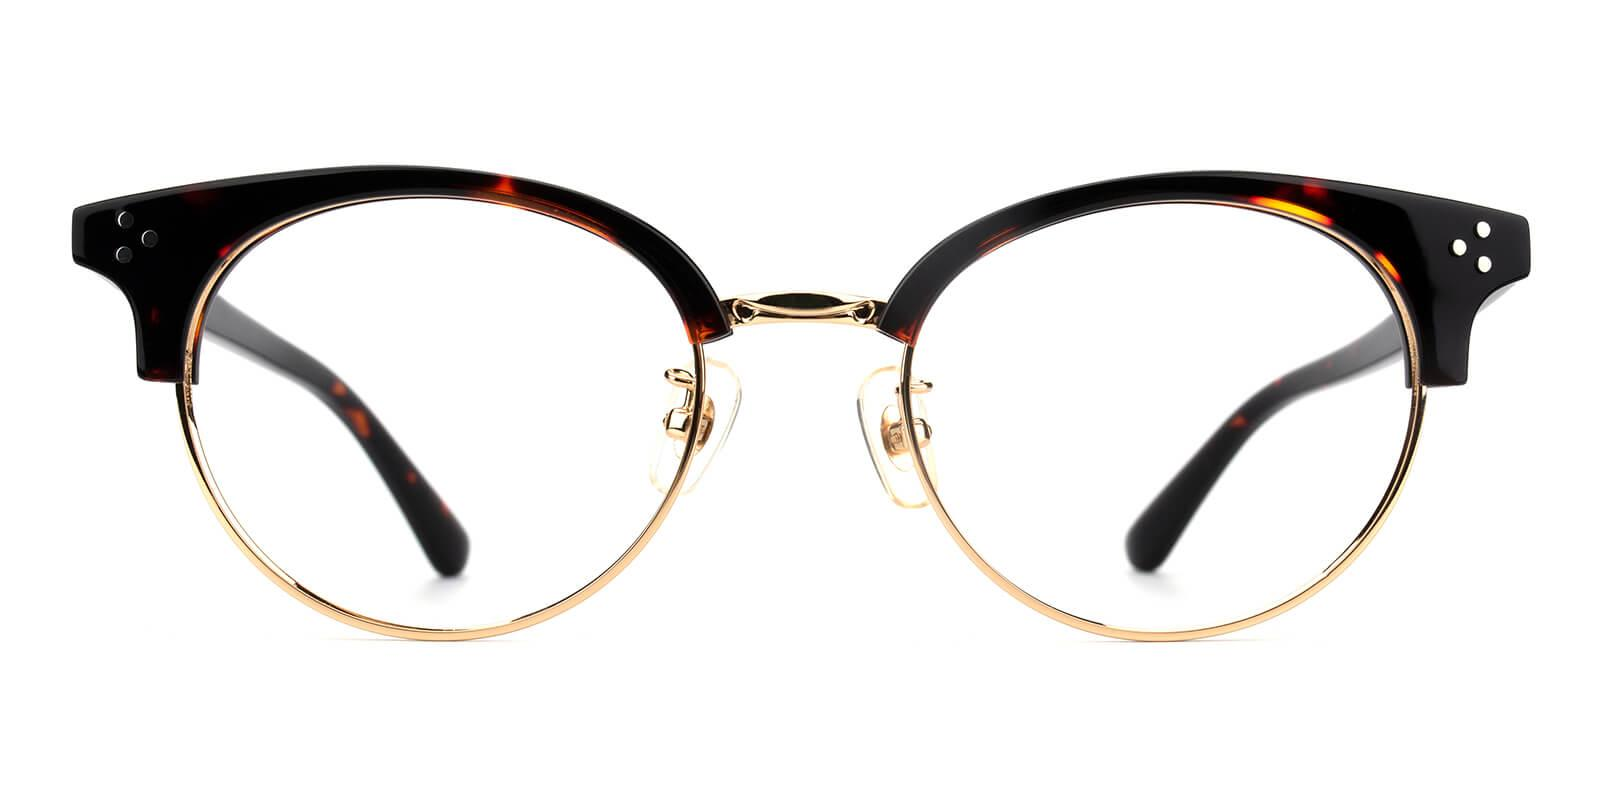 Jinjiay-Tortoise-Oval-Metal-Eyeglasses-additional2